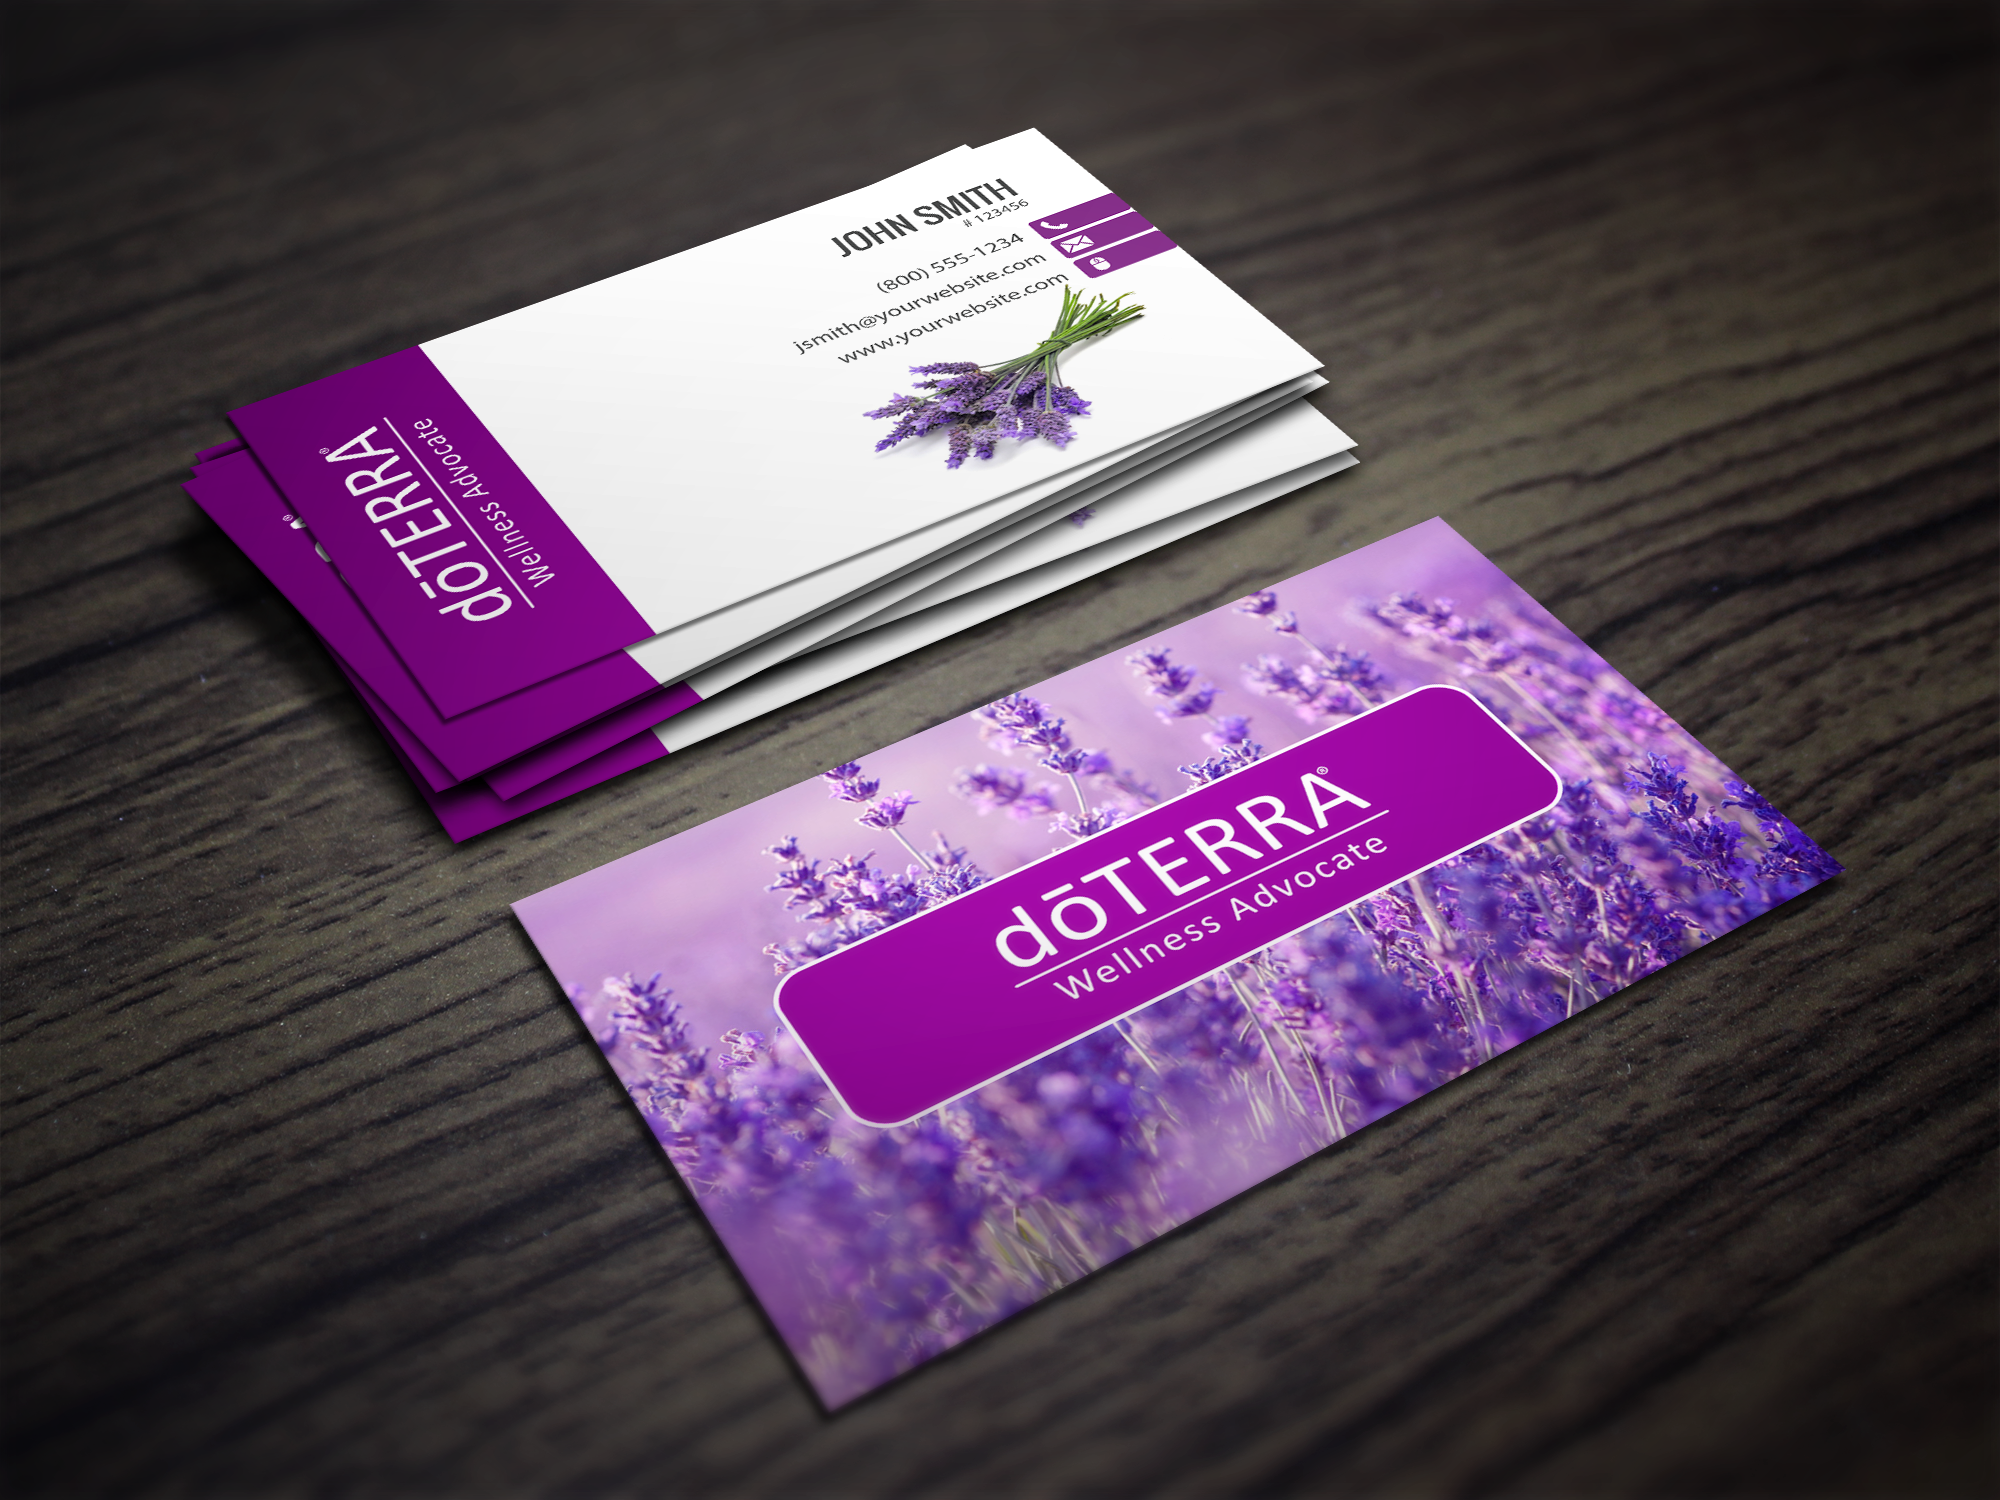 Doterra Business Cards With A Lavendar Field In The Background